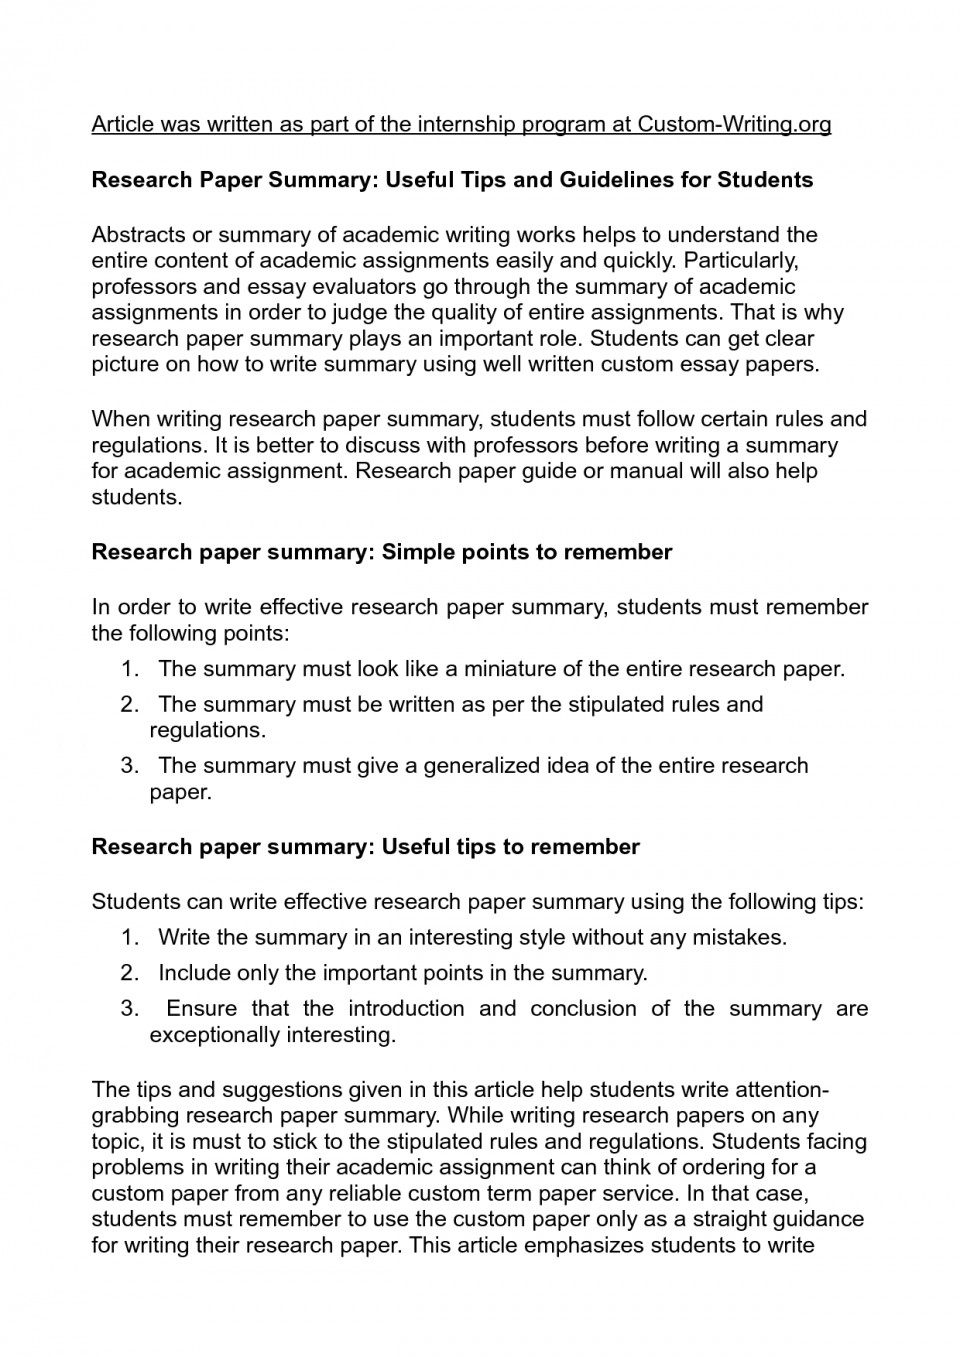 006 Essay Example Adhd Research Papers Brain Scan College About Writing Paper Summary 5 Impressive Introduction Thesis Statement 960